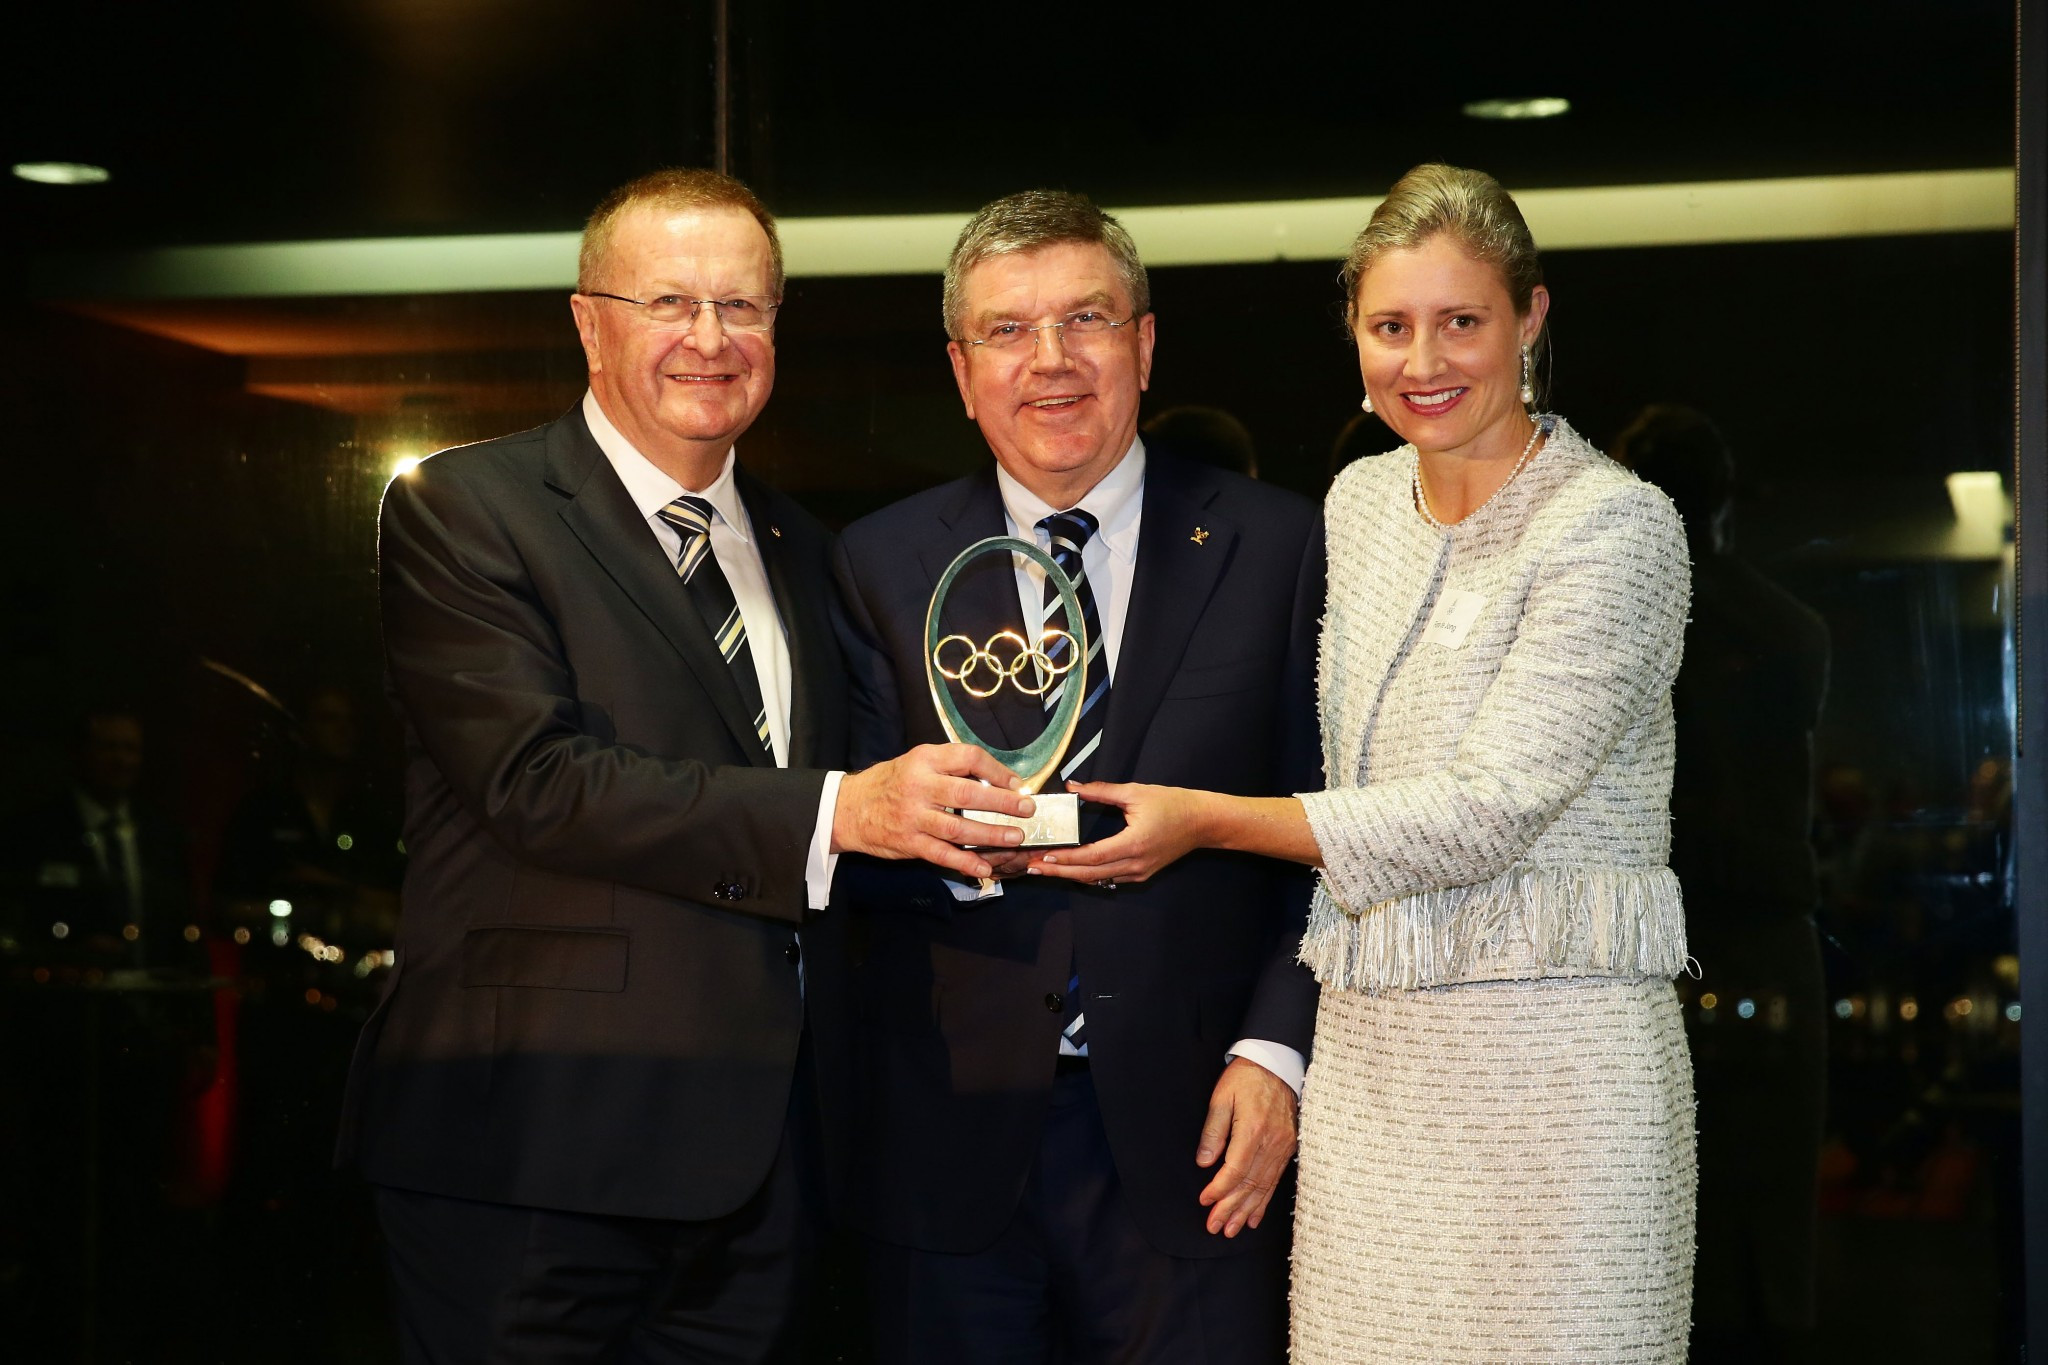 Fiona de Jong, right, pictured alongside John Coates, left, and IOC President Thomas Bach in April 2015 ©Getty Images